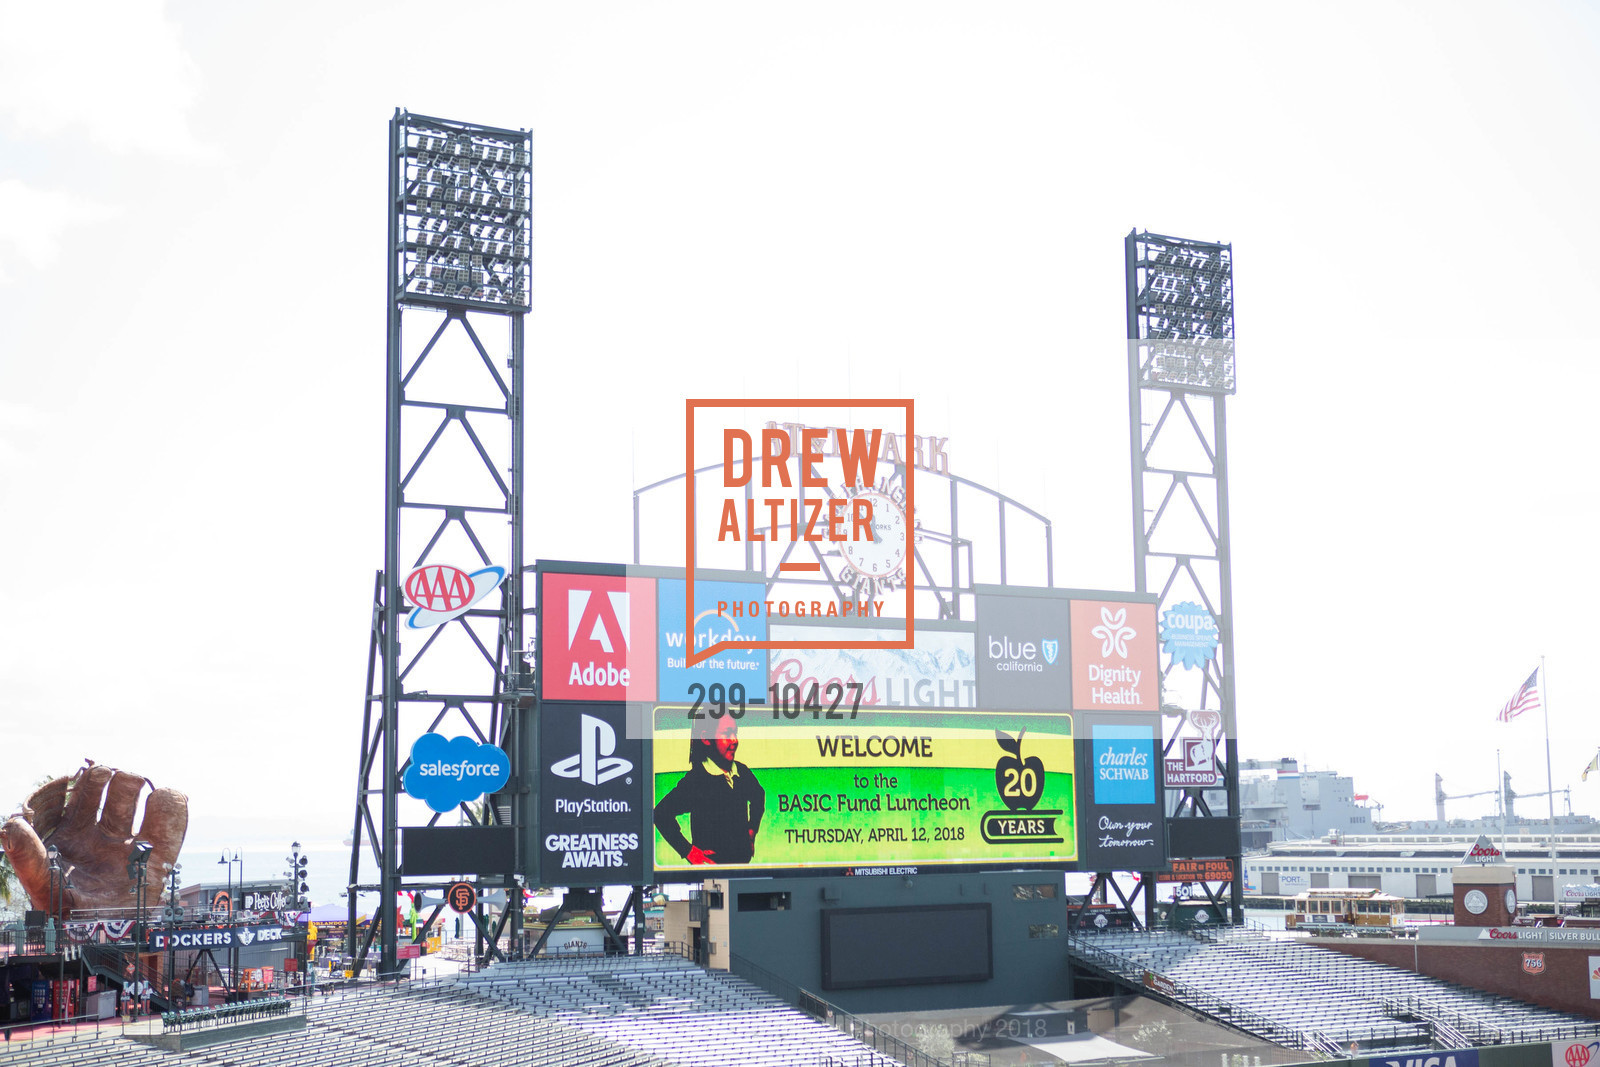 Atmosphere, The BASIC Fund 20th Anniversary Celebration, AT&T Park, Club Level, April 12th, 2018